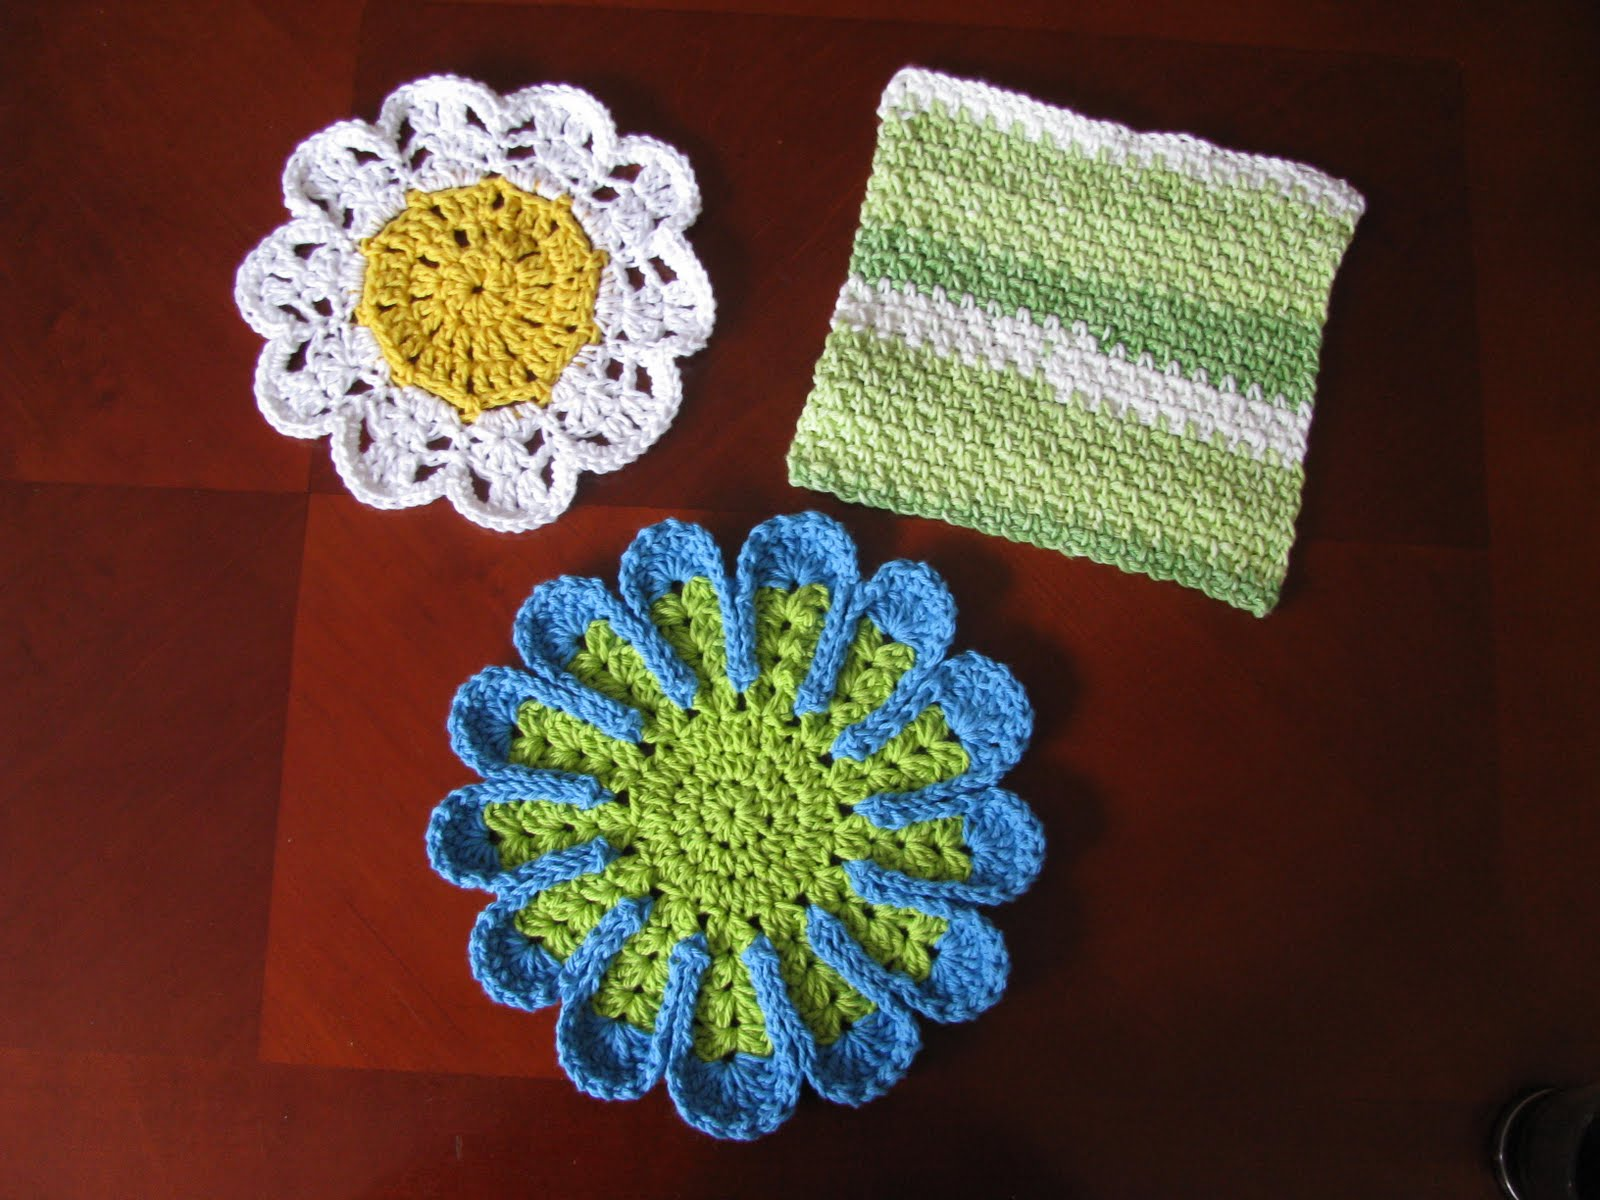 Rose Lace Knitting Pattern Free : Would someone else be the responsible adult now?: Knitting ...